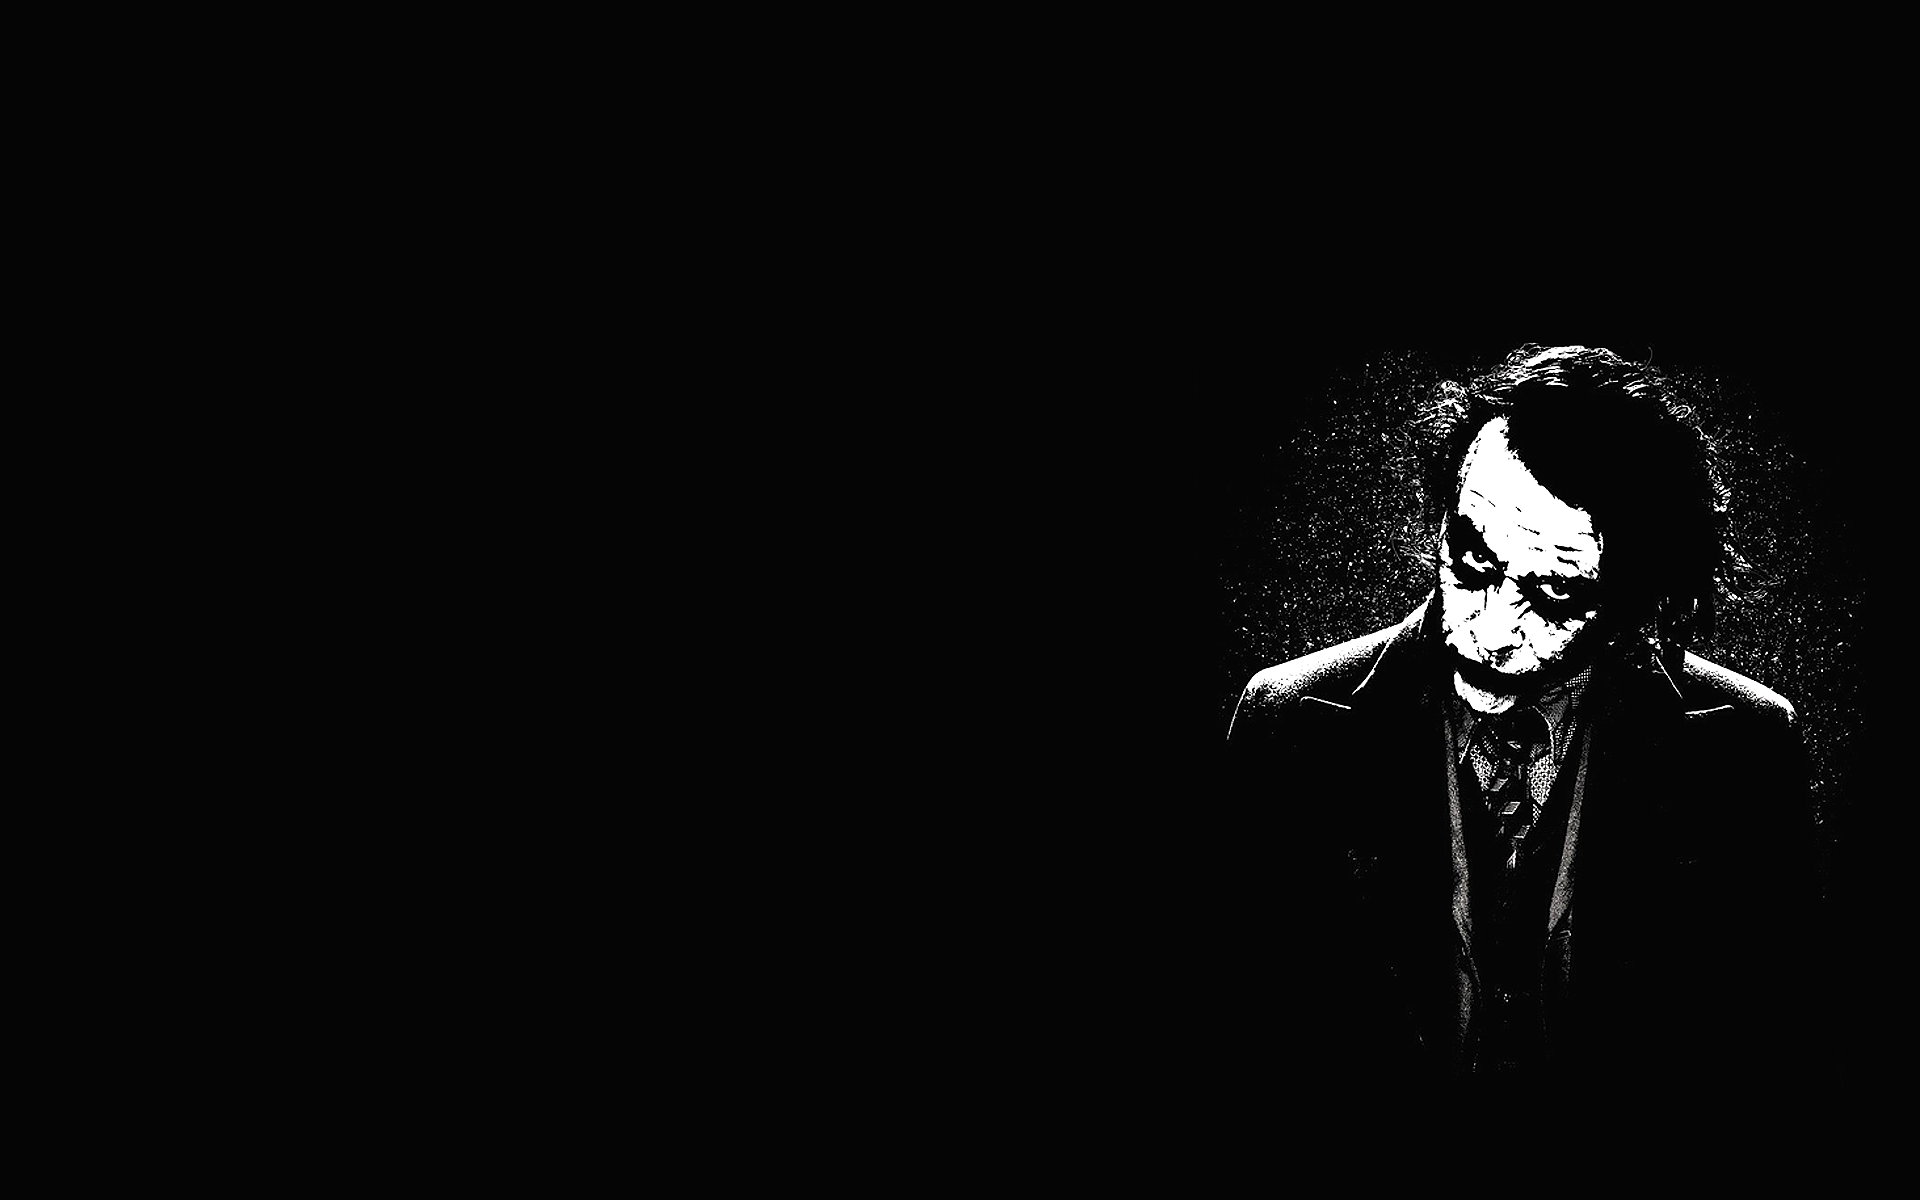 The Joker Wallpaper 1920x1200 The Joker 1920x1200